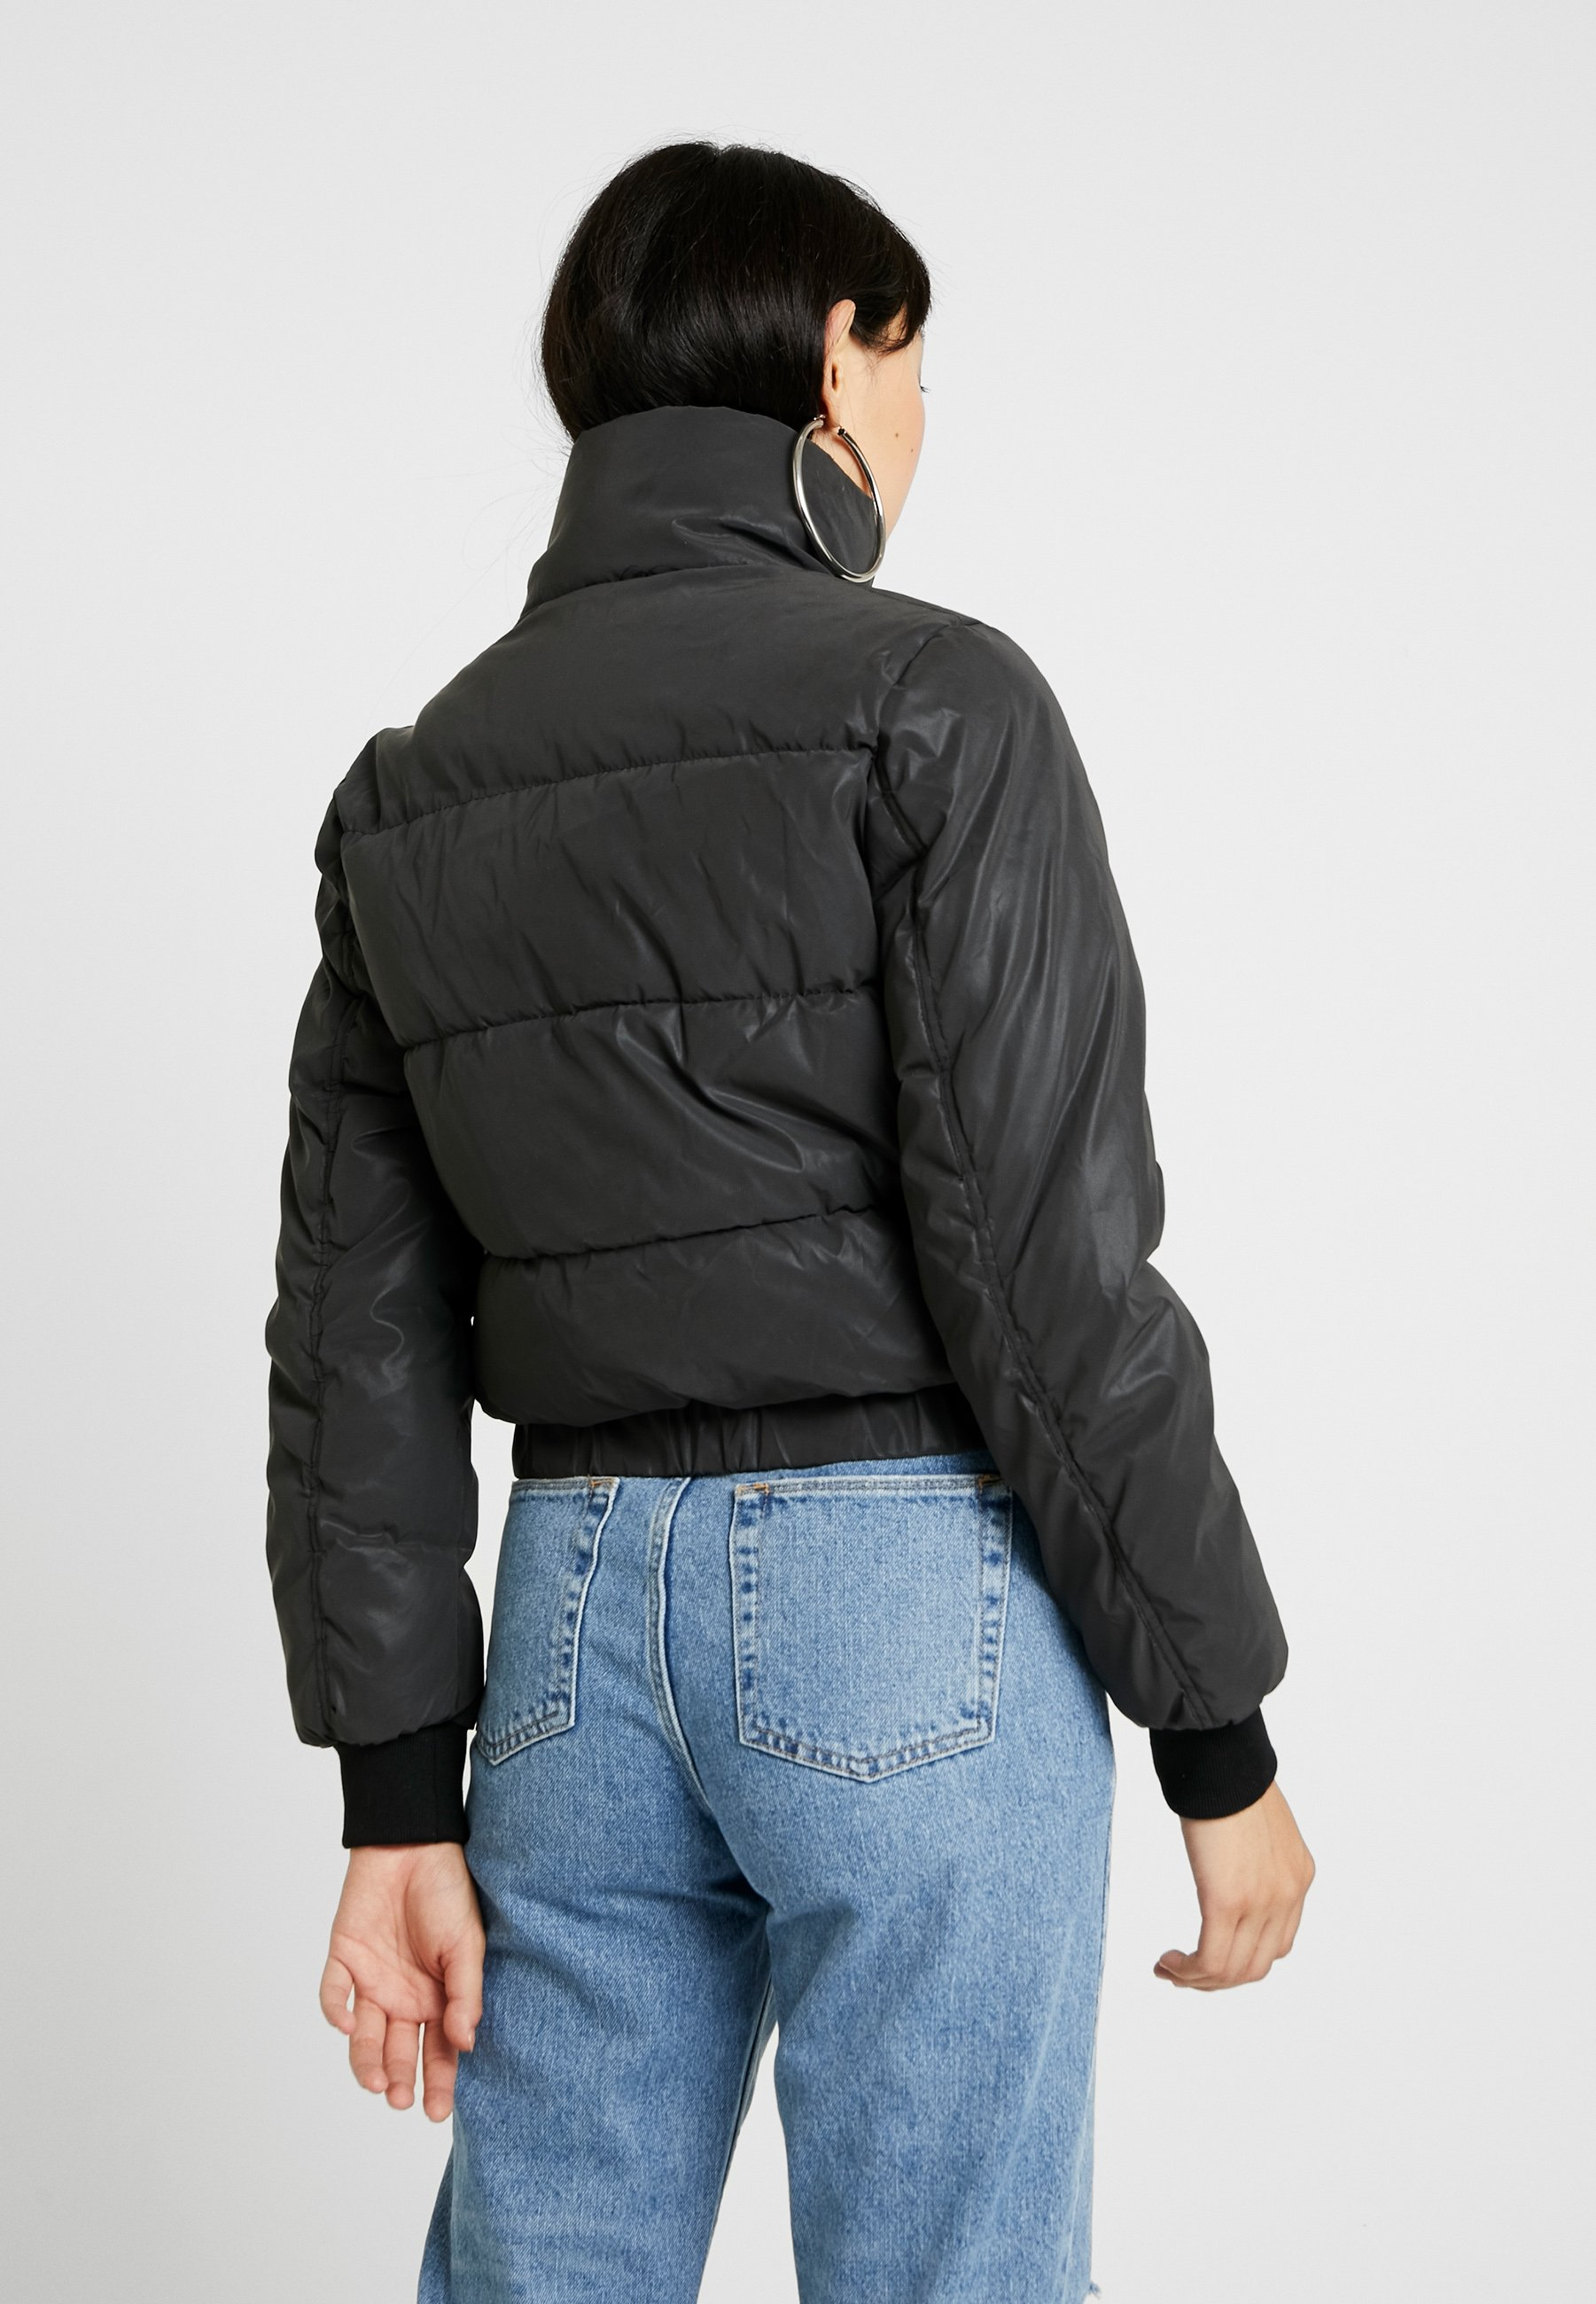 D'hiver Neck Puffer Reflective Turtle CollarVeste Jacket Sixth June With Black ZkXiPu